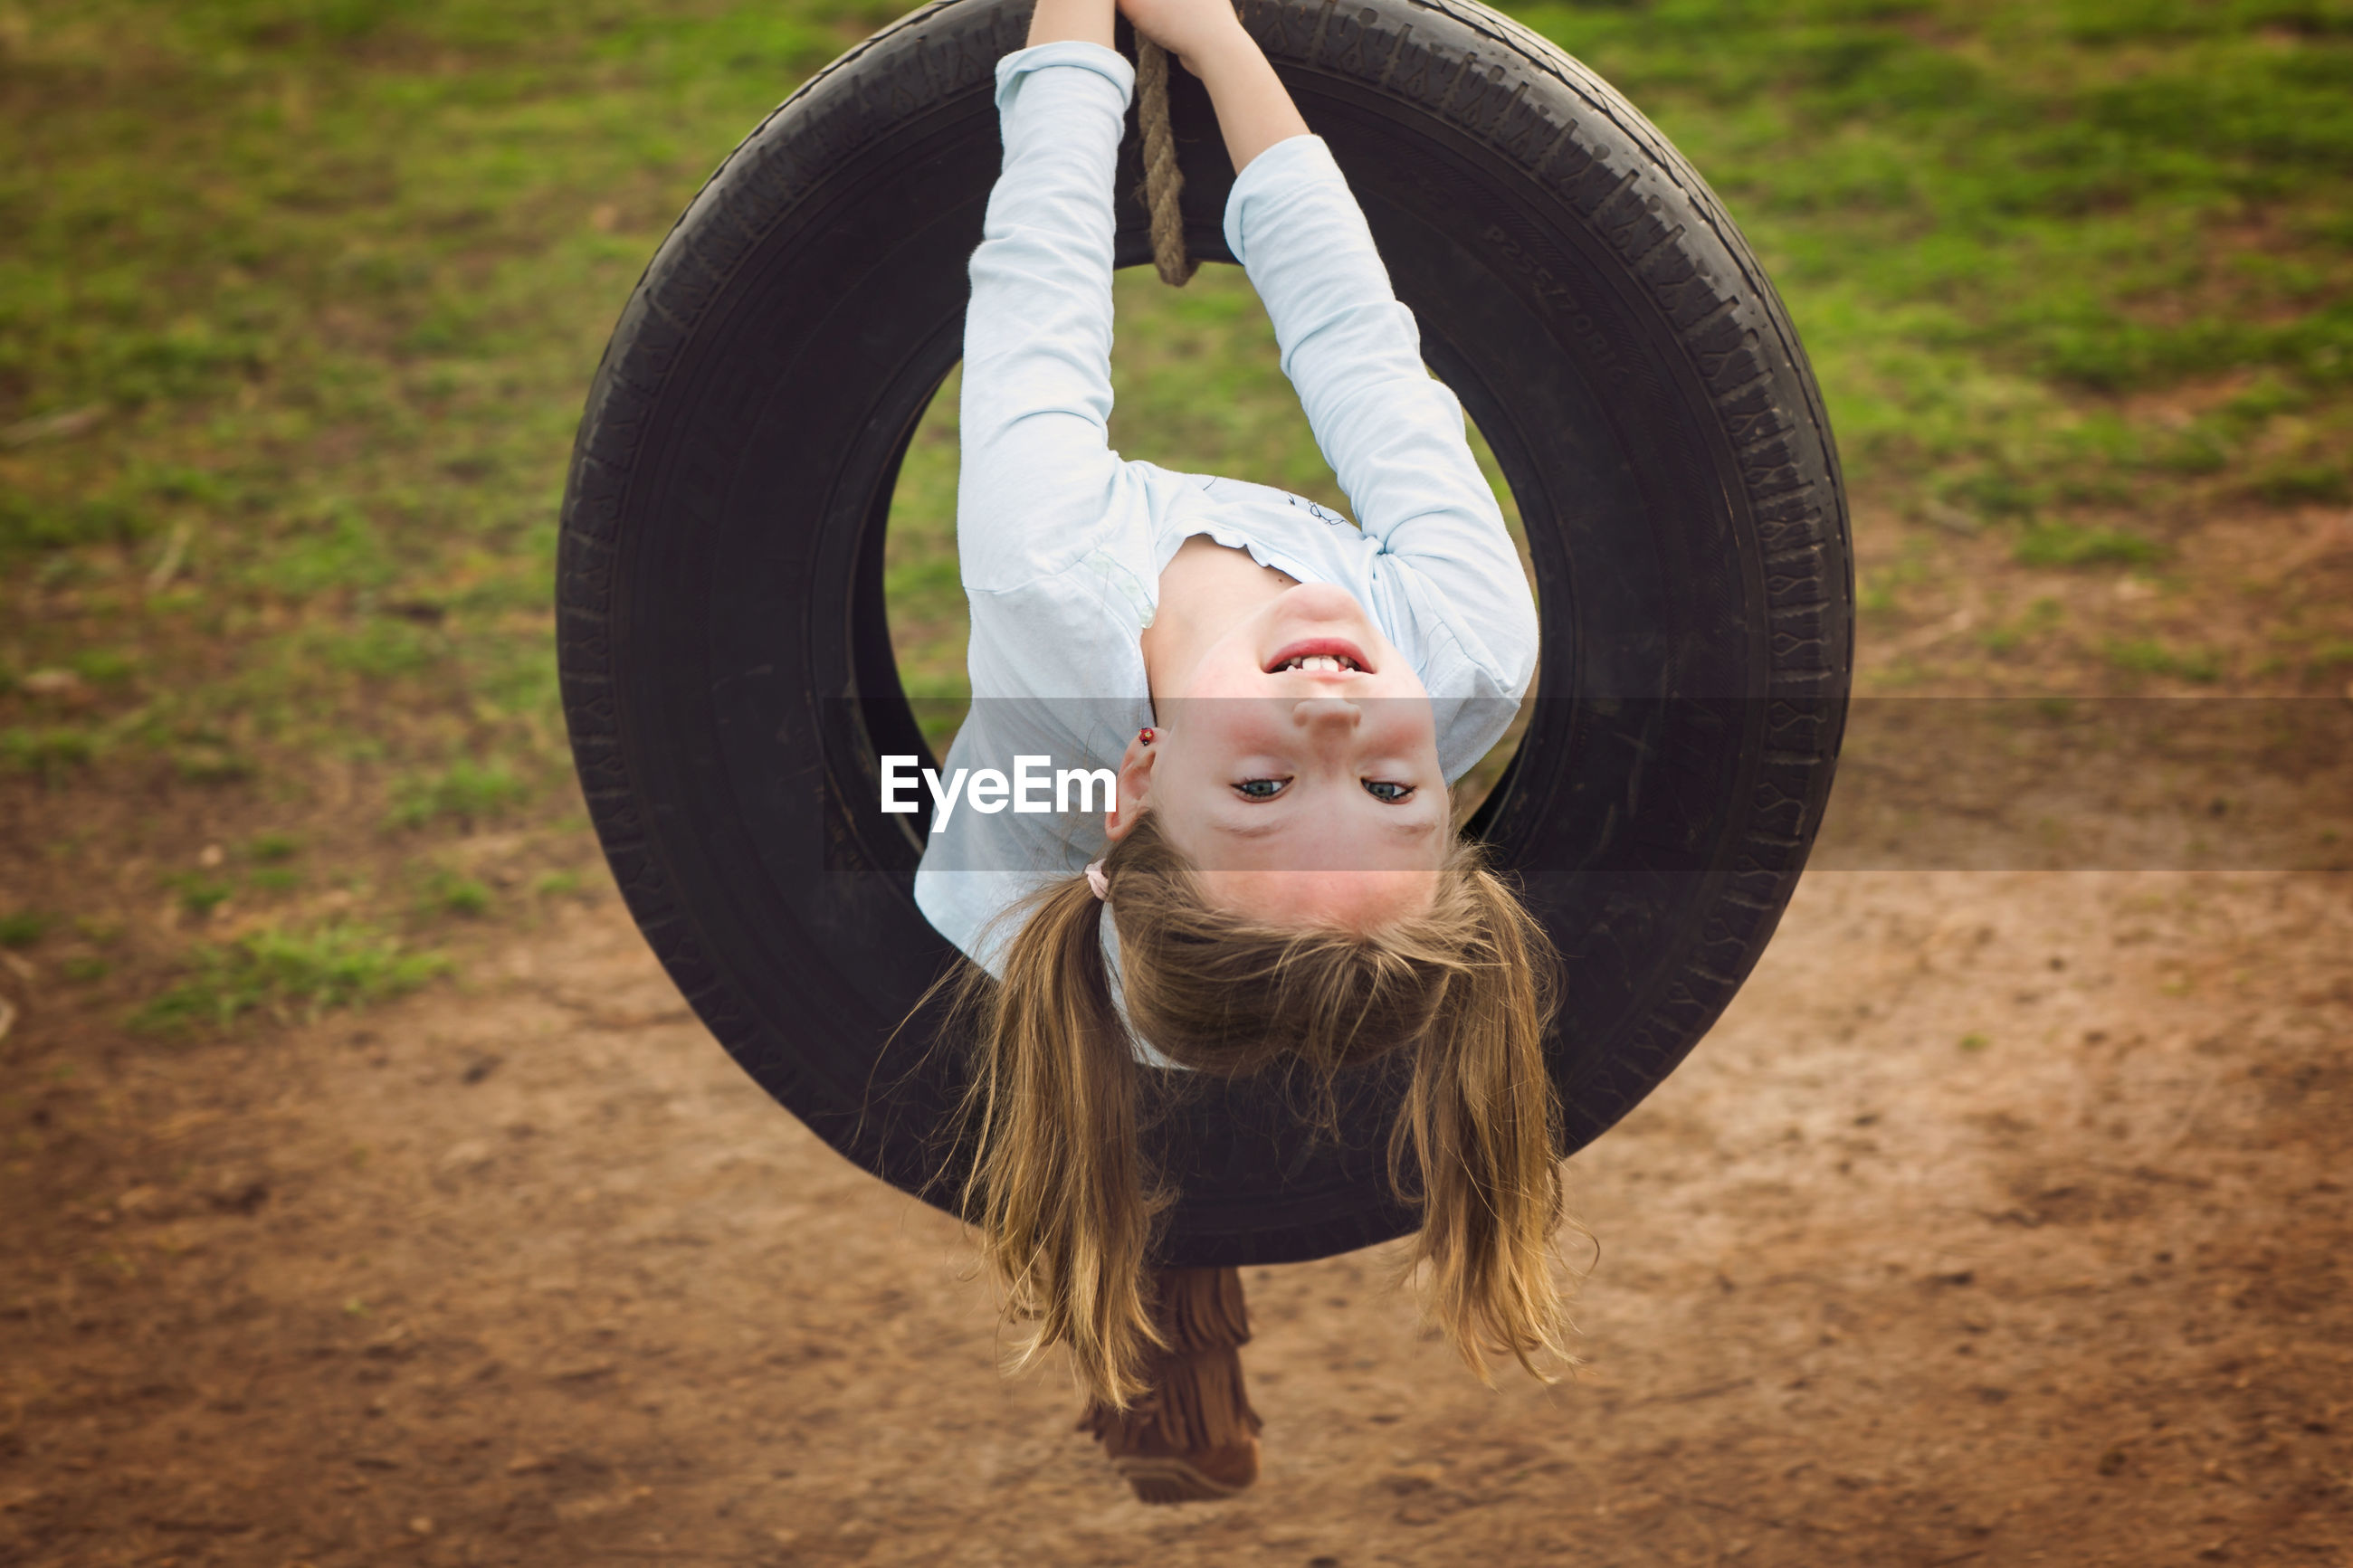 Portrait of cute girl playing with tire swing in playground